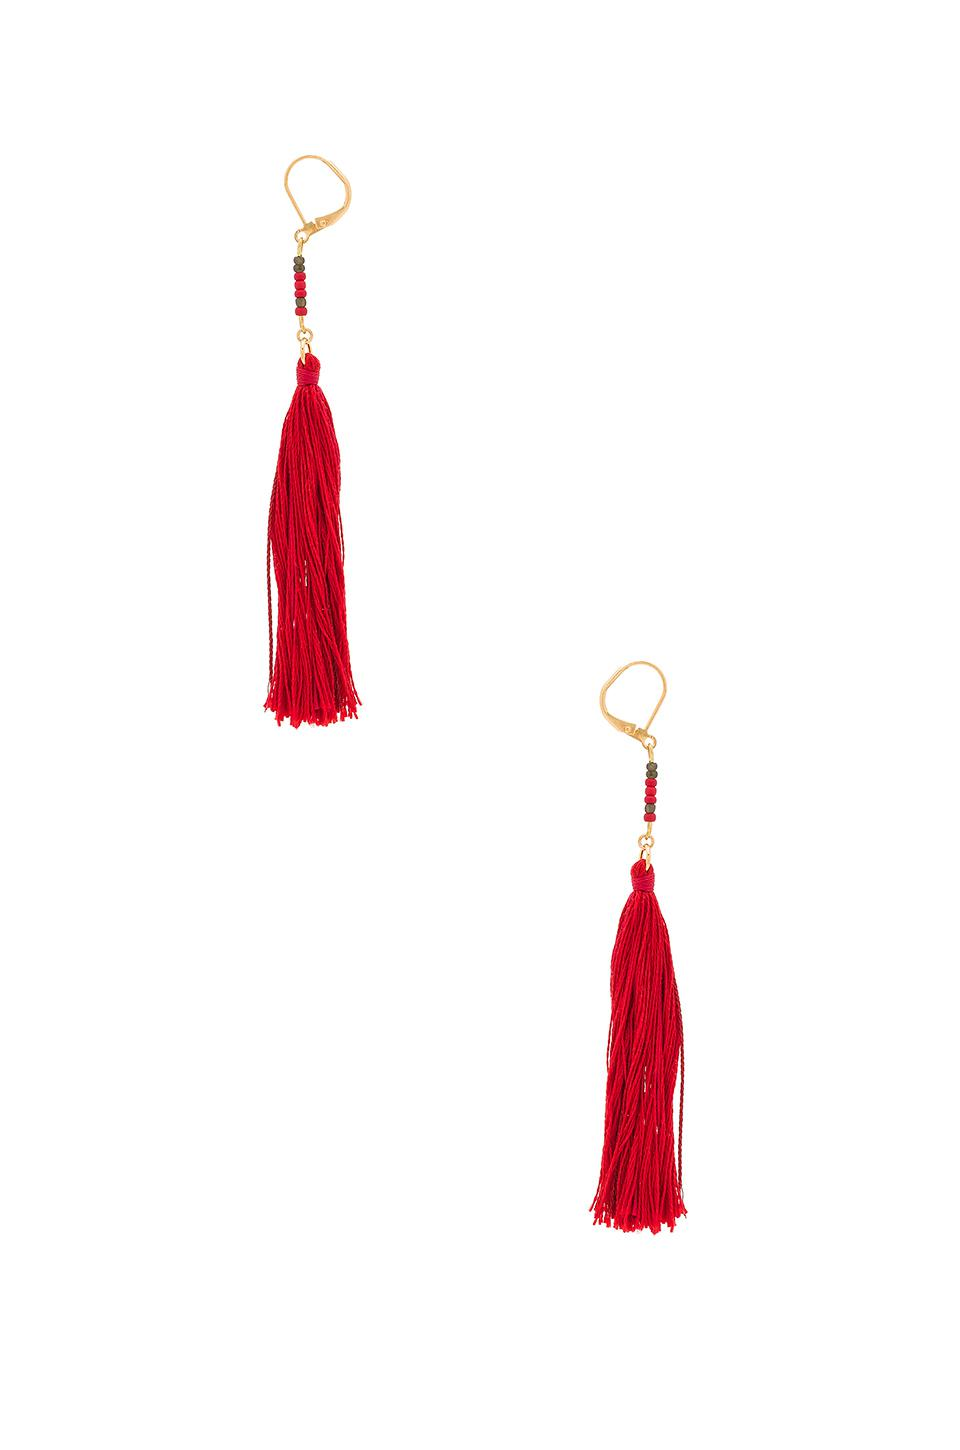 x REVOLVE Star Earrings in Red Shashi jxVPhB